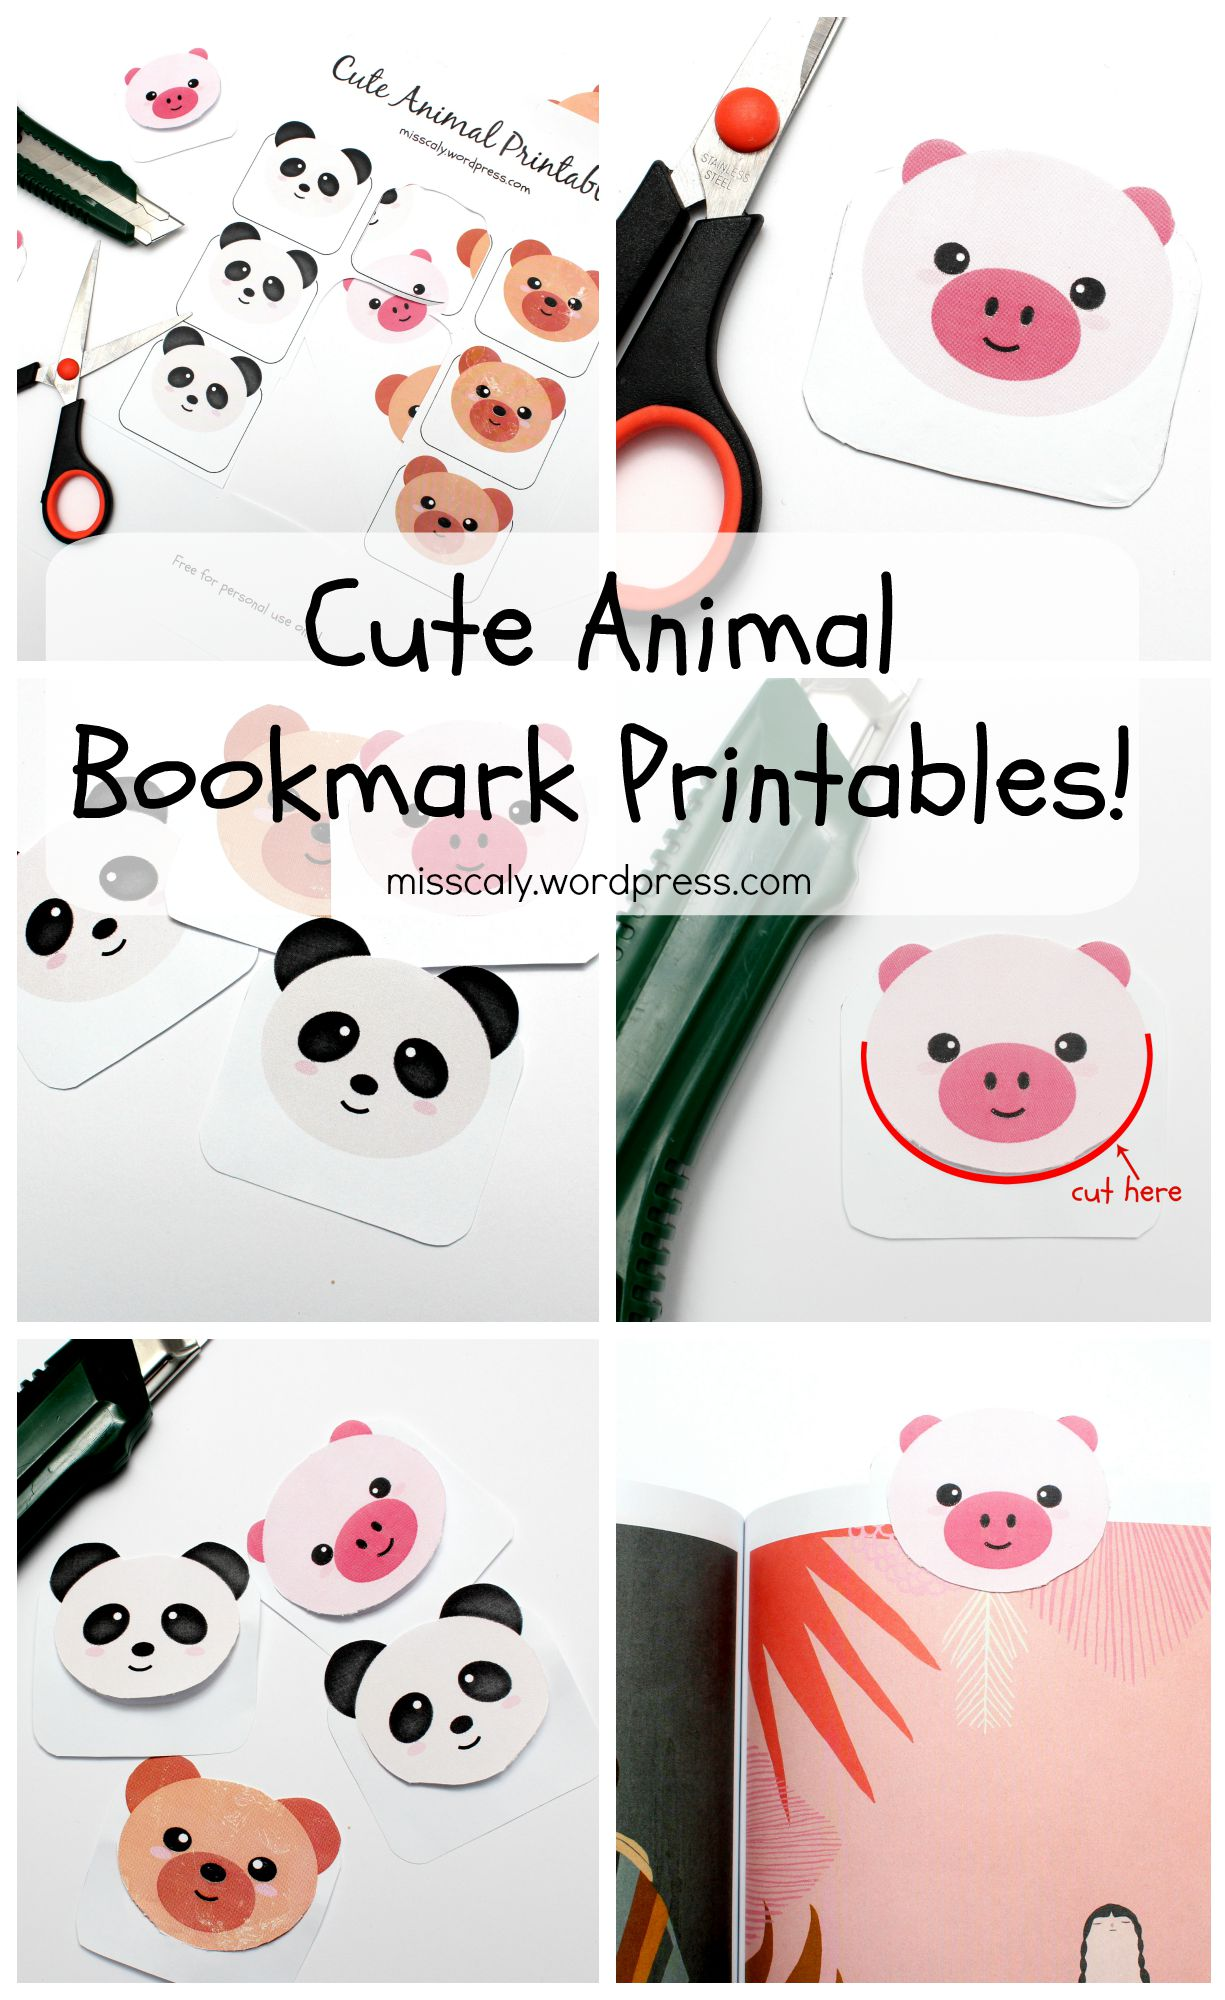 Gorgeous image in cute bookmarks printable